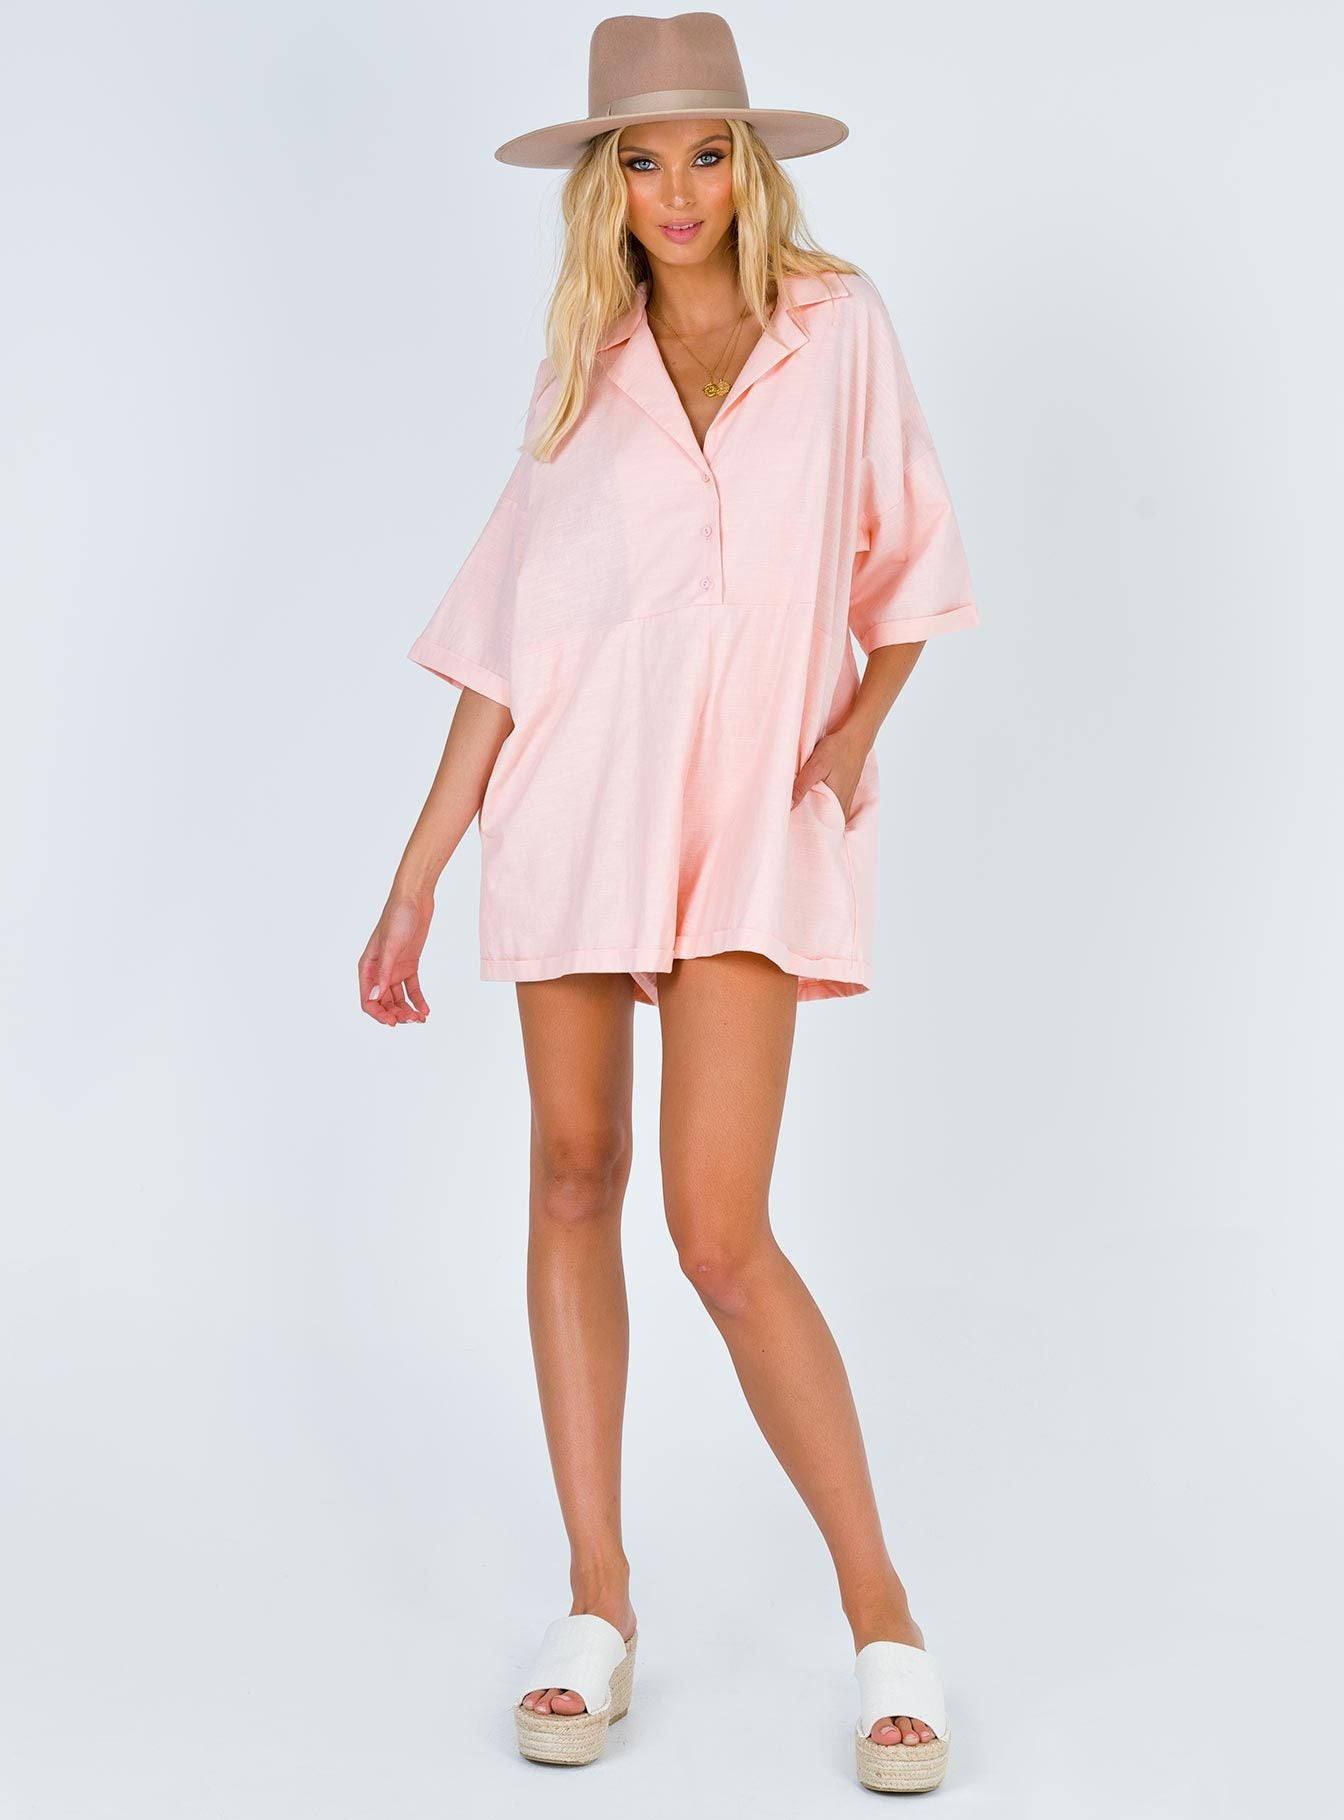 Sinclair Playsuit